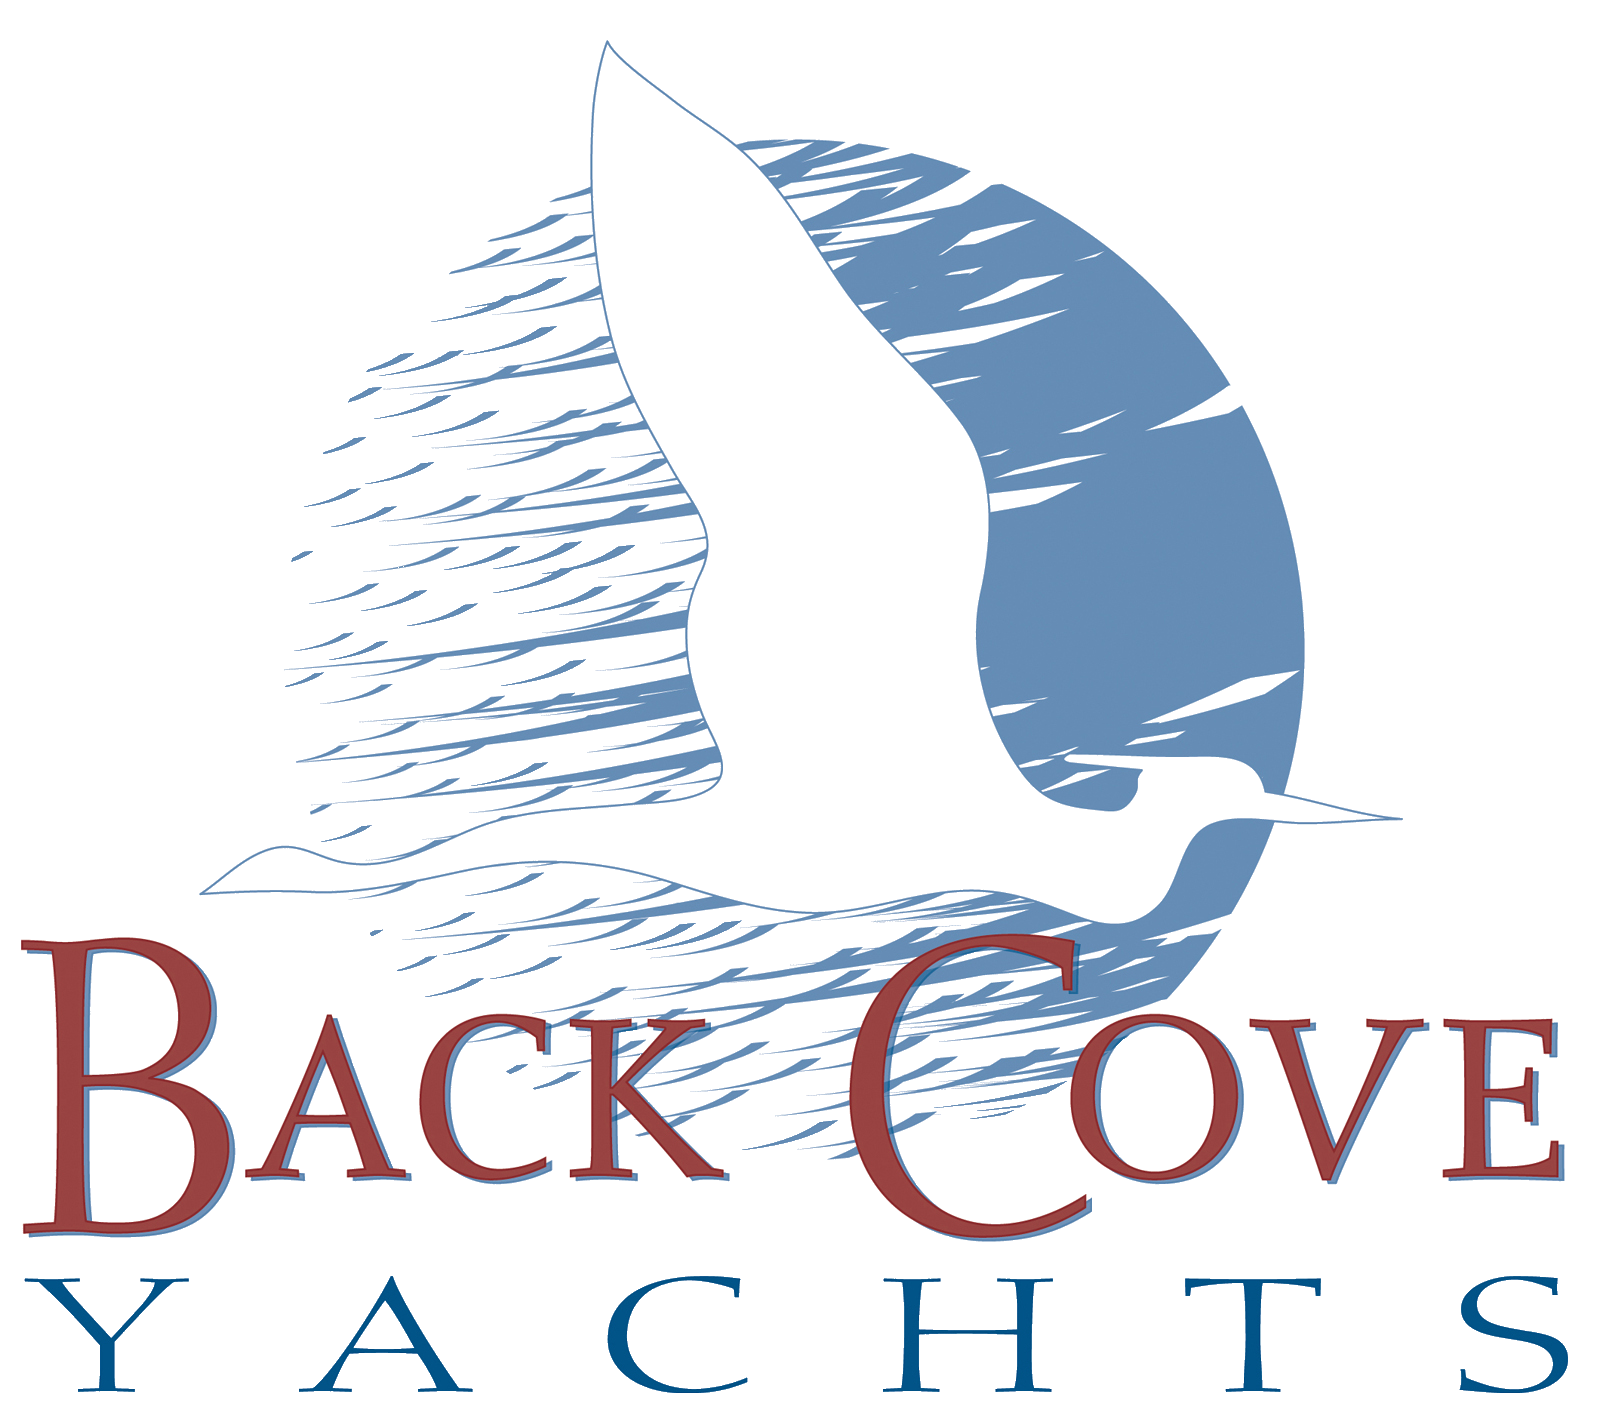 Back Cove logo